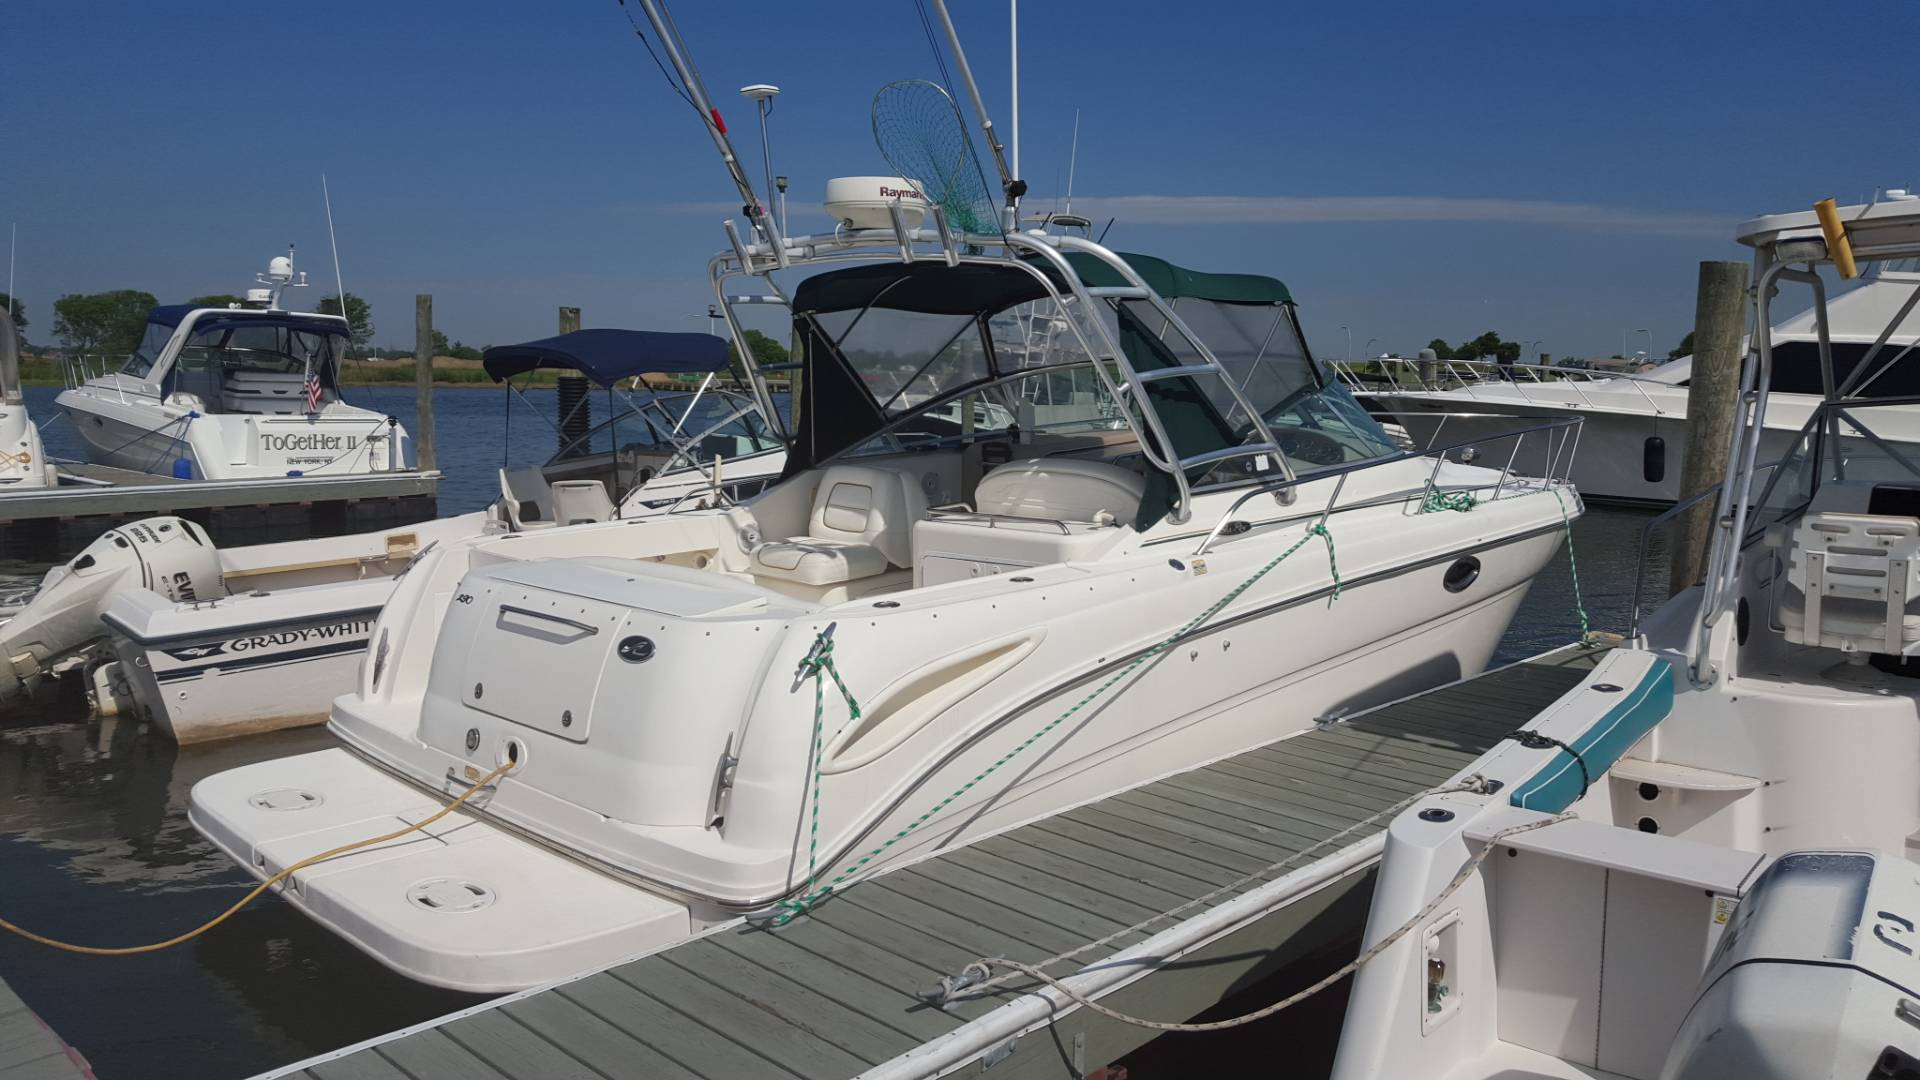 2001 Sea Ray Amberjack in Oceanside, New York